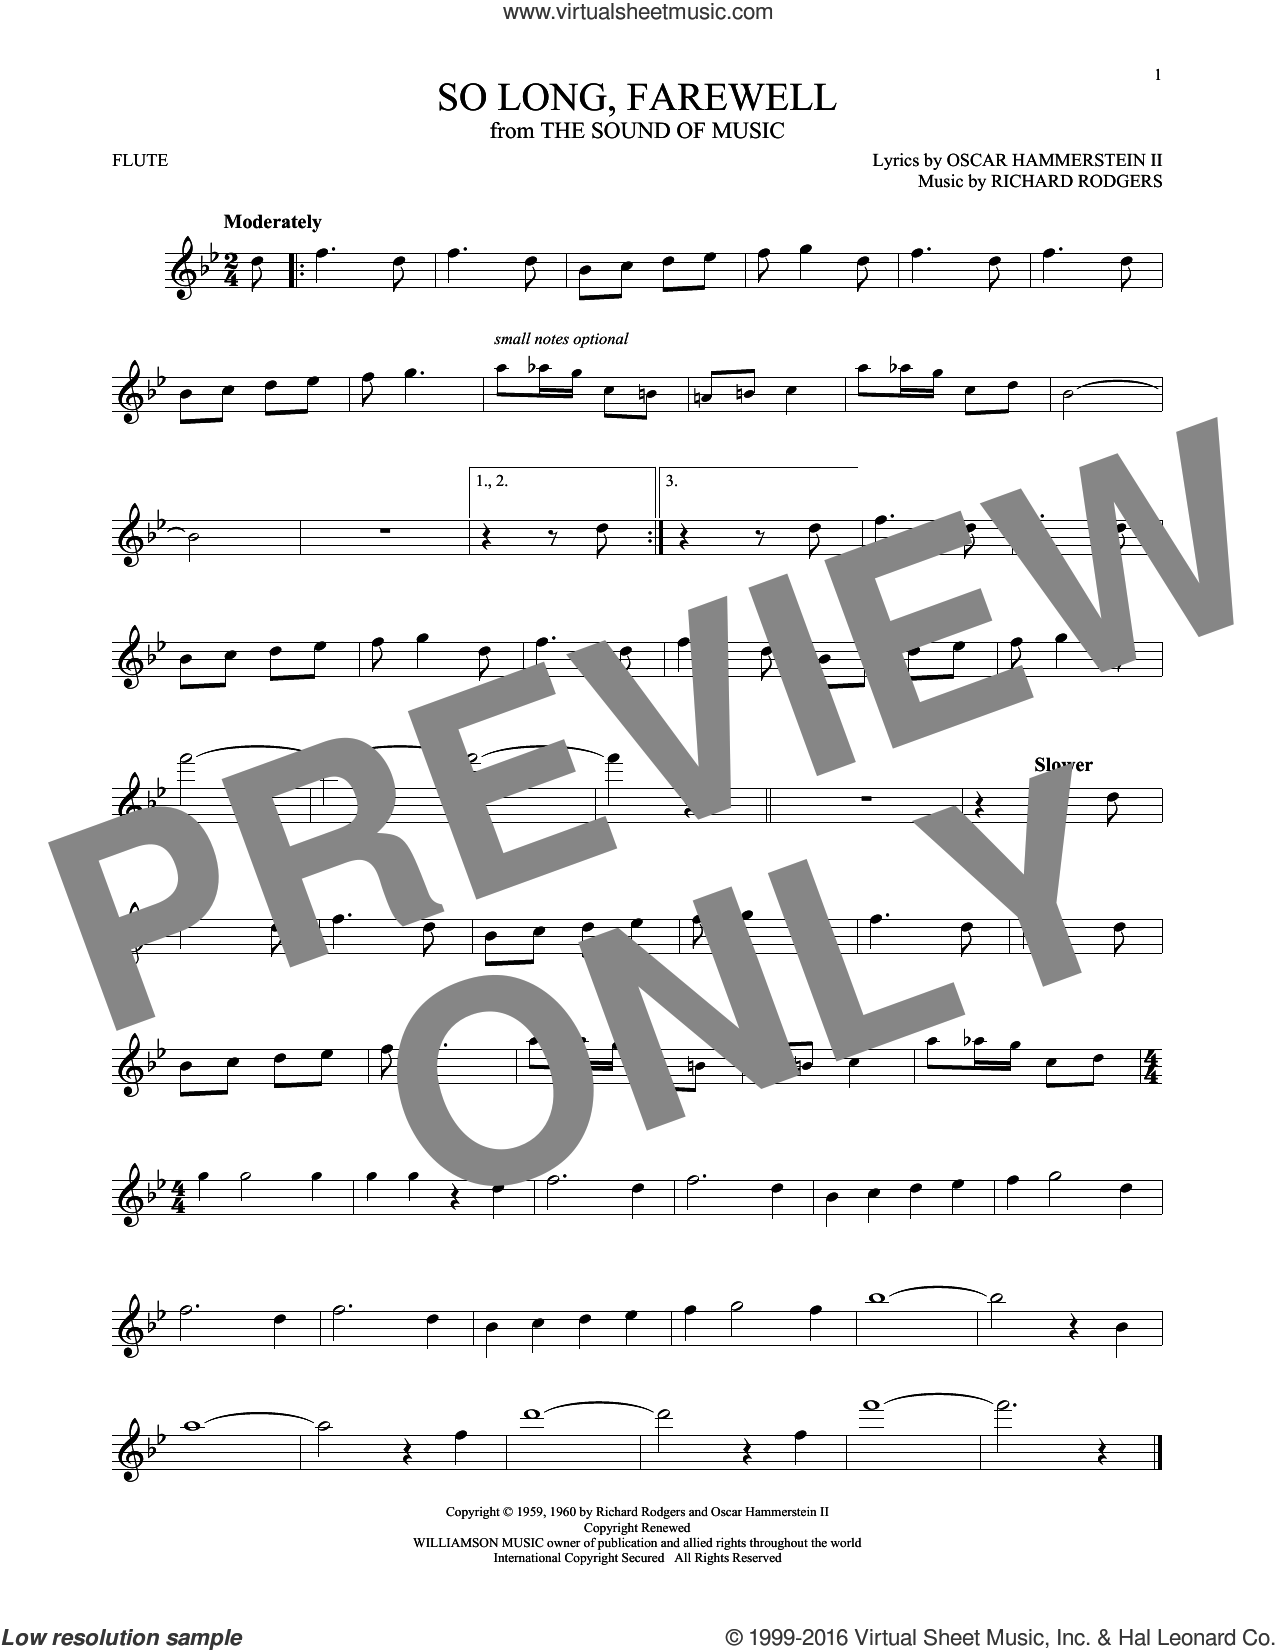 So Long, Farewell sheet music for flute solo by Rodgers & Hammerstein, Oscar II Hammerstein and Richard Rodgers, intermediate skill level